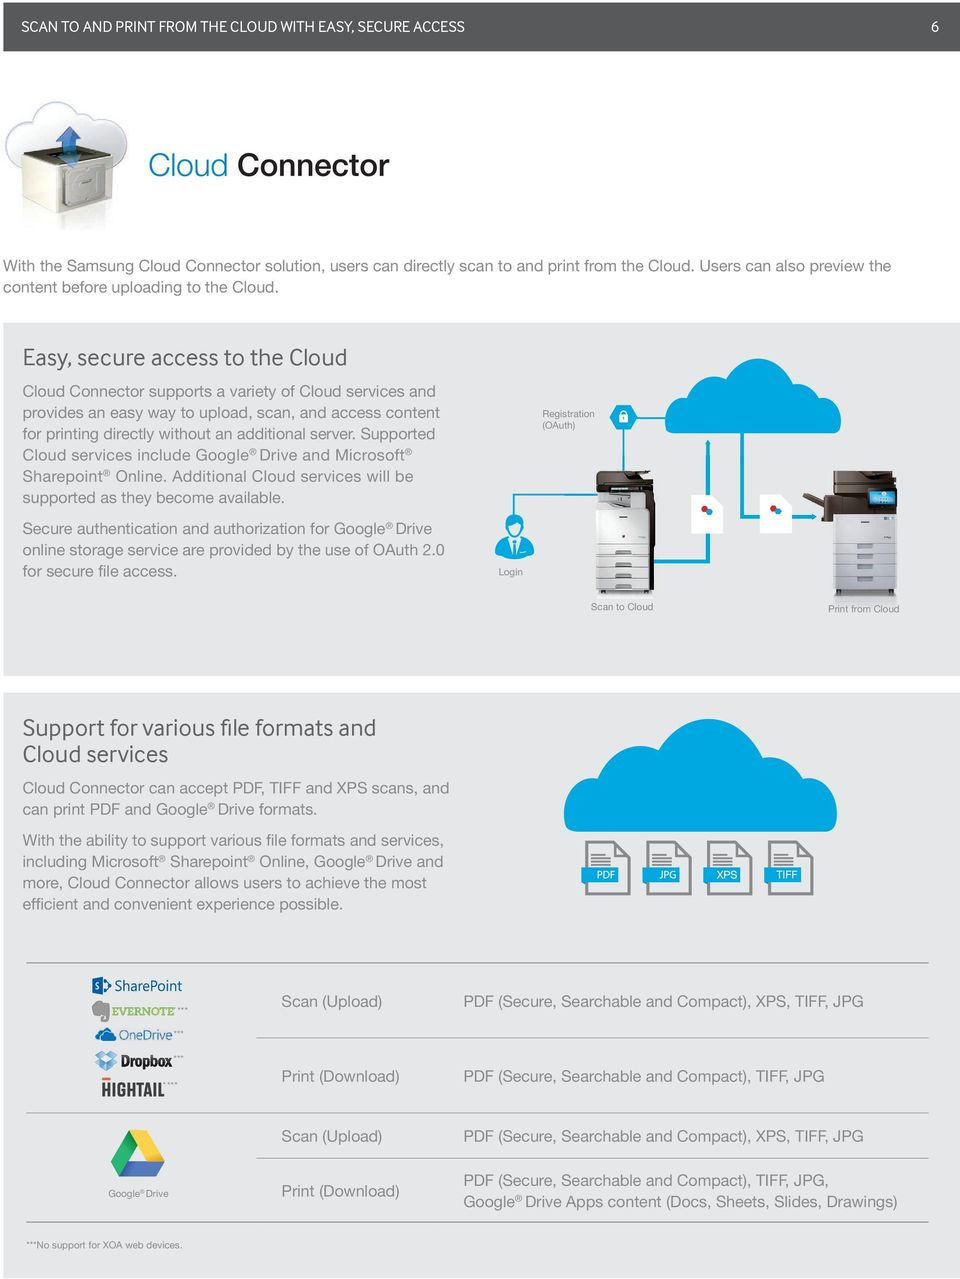 Easy, secure access to the Cloud Cloud Connector supports a variety of Cloud services and provides an easy way to upload, scan, and access content for printing directly without an additional server.